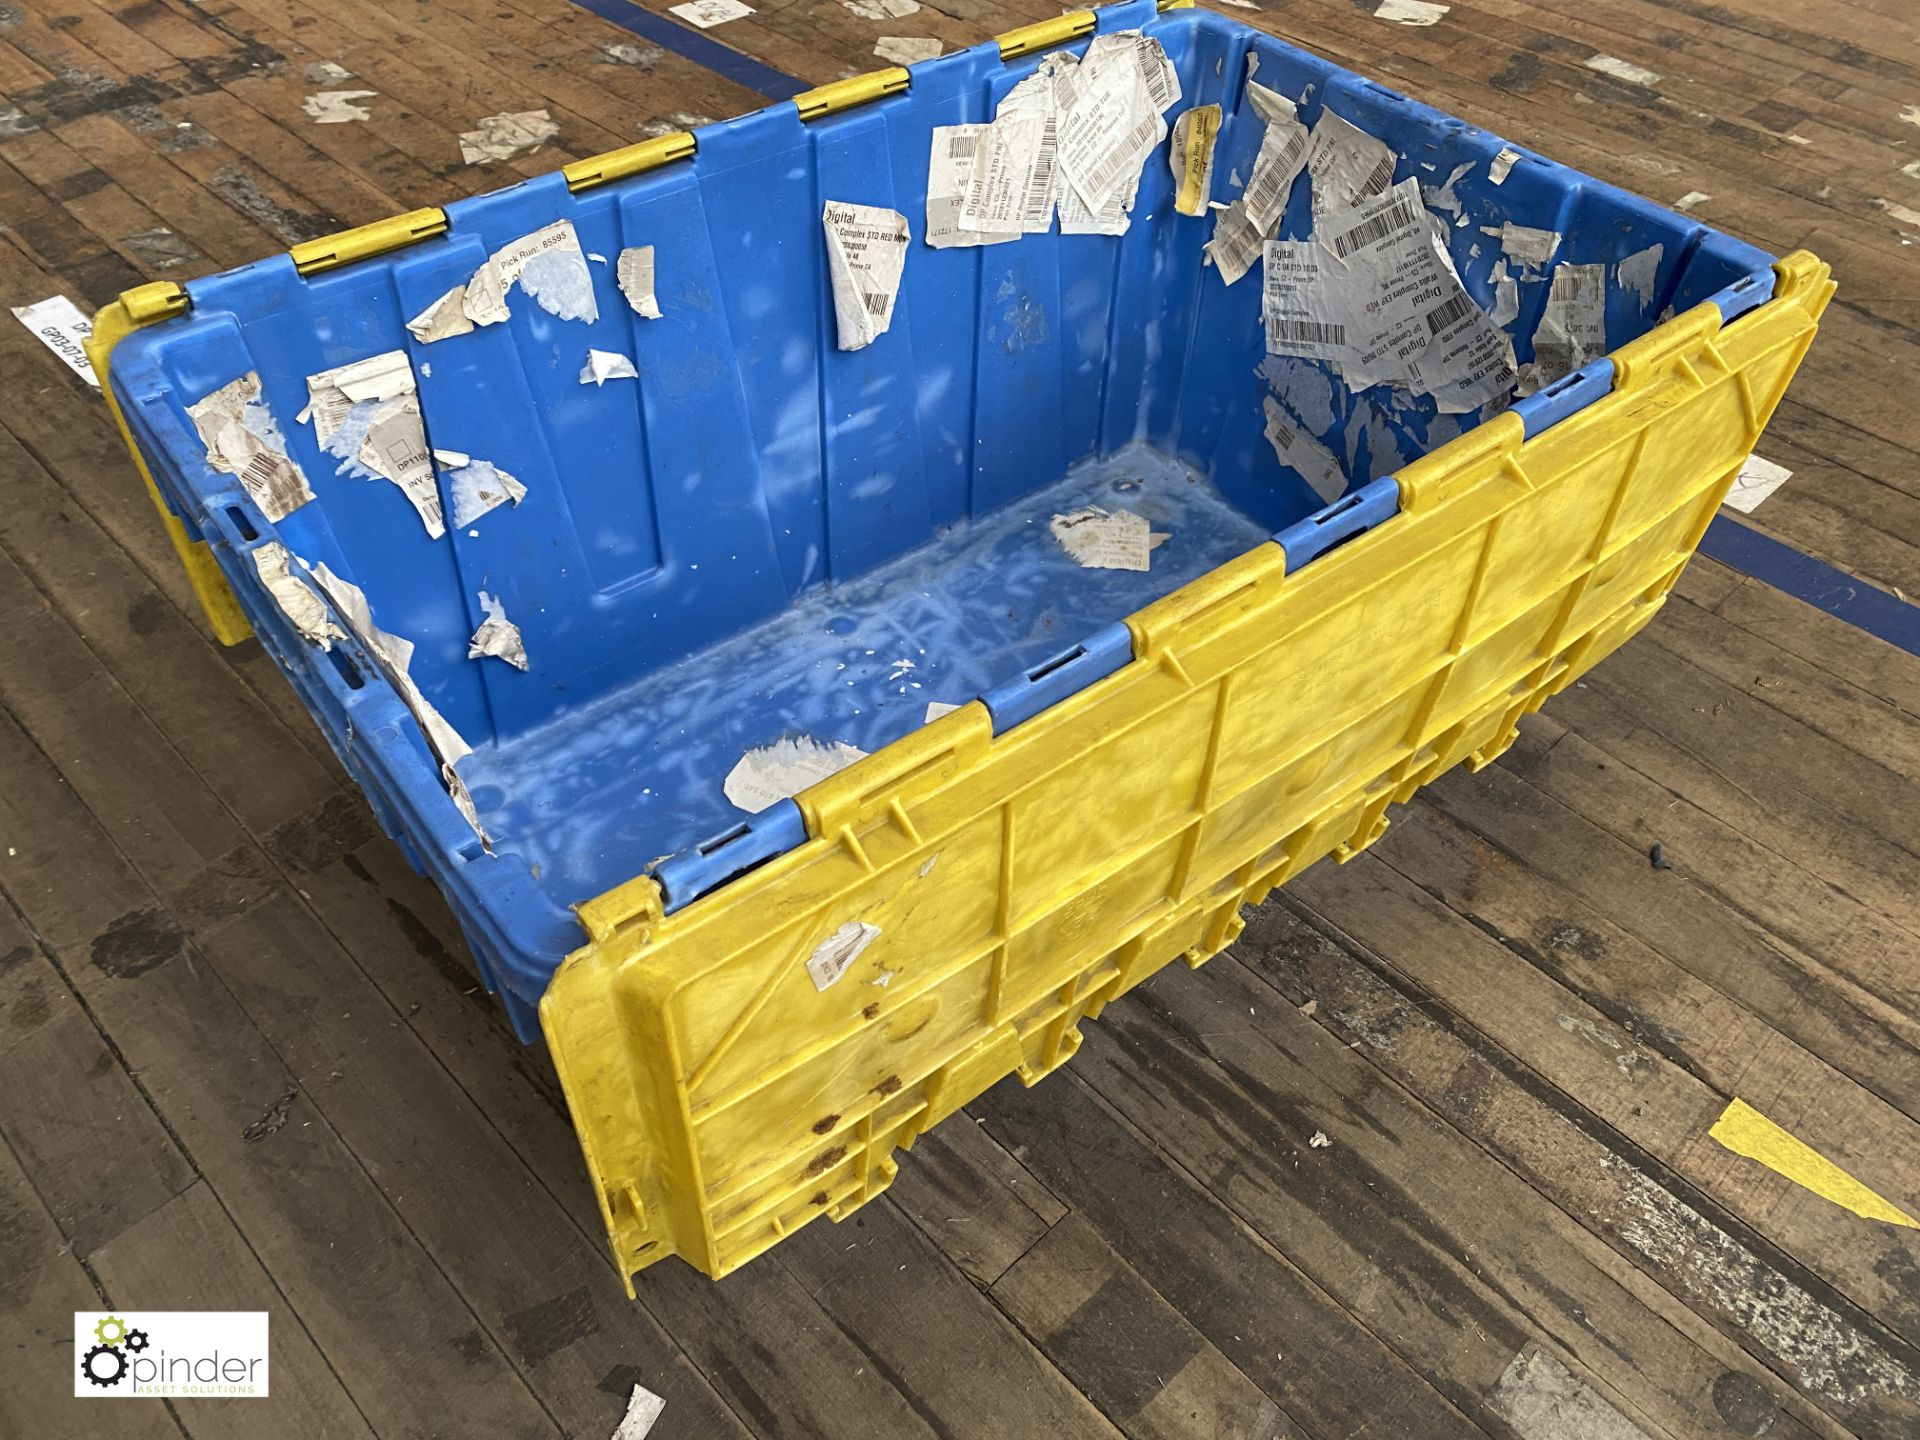 Approx. 28 Buckhorn stackable plastic Storage Containers, 640mm x 380mm x 300mm, with interlocking - Image 2 of 4